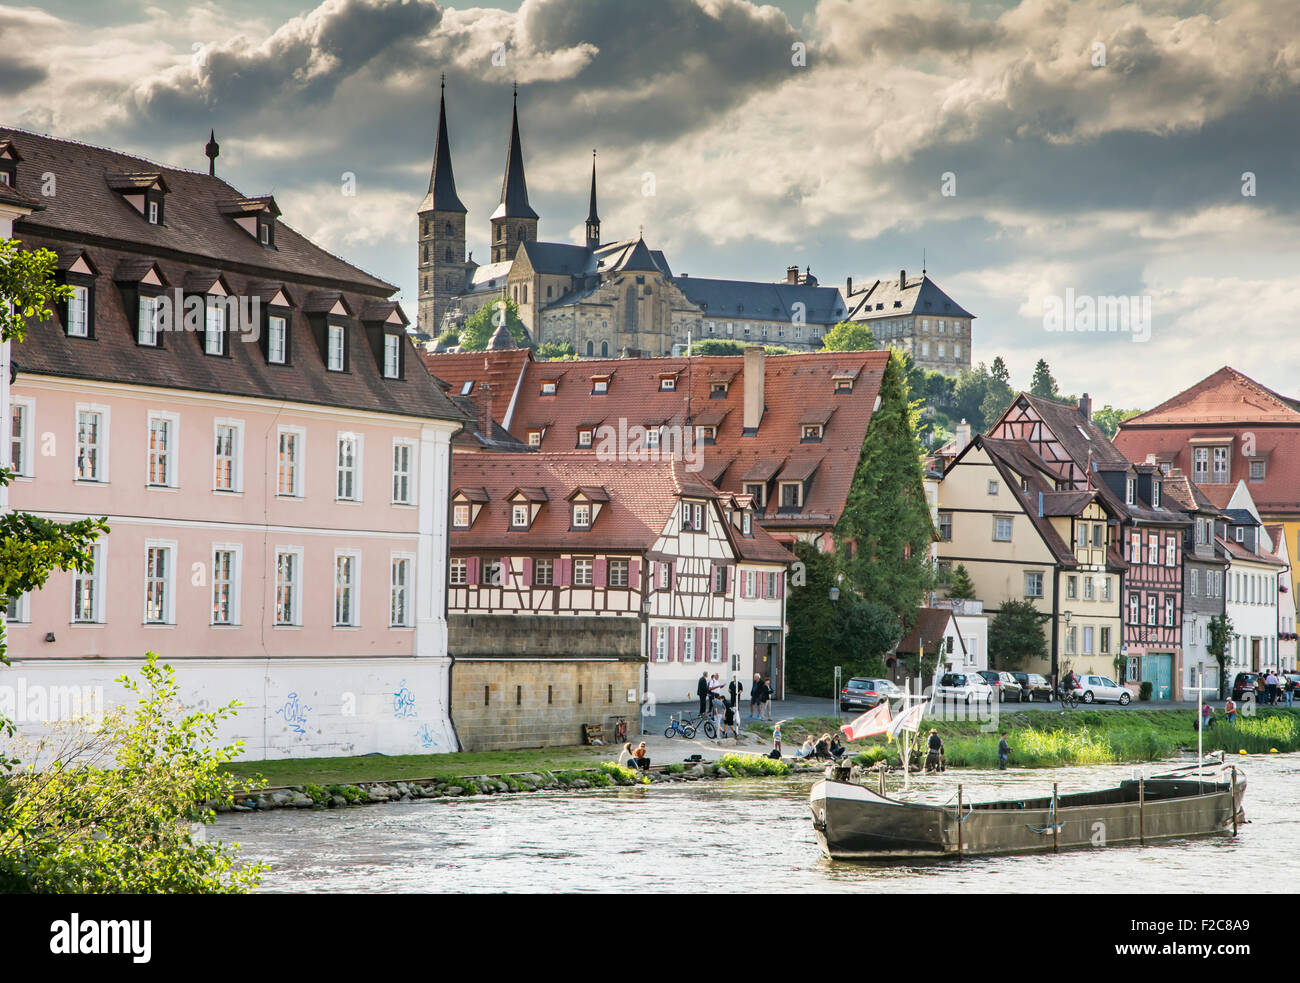 BAMBERG, GERMANY - SEPTEMBER 4: Tourists at the river Regnitz below Michelsberg Abbey in Bamberg, Germany on September - Stock Image